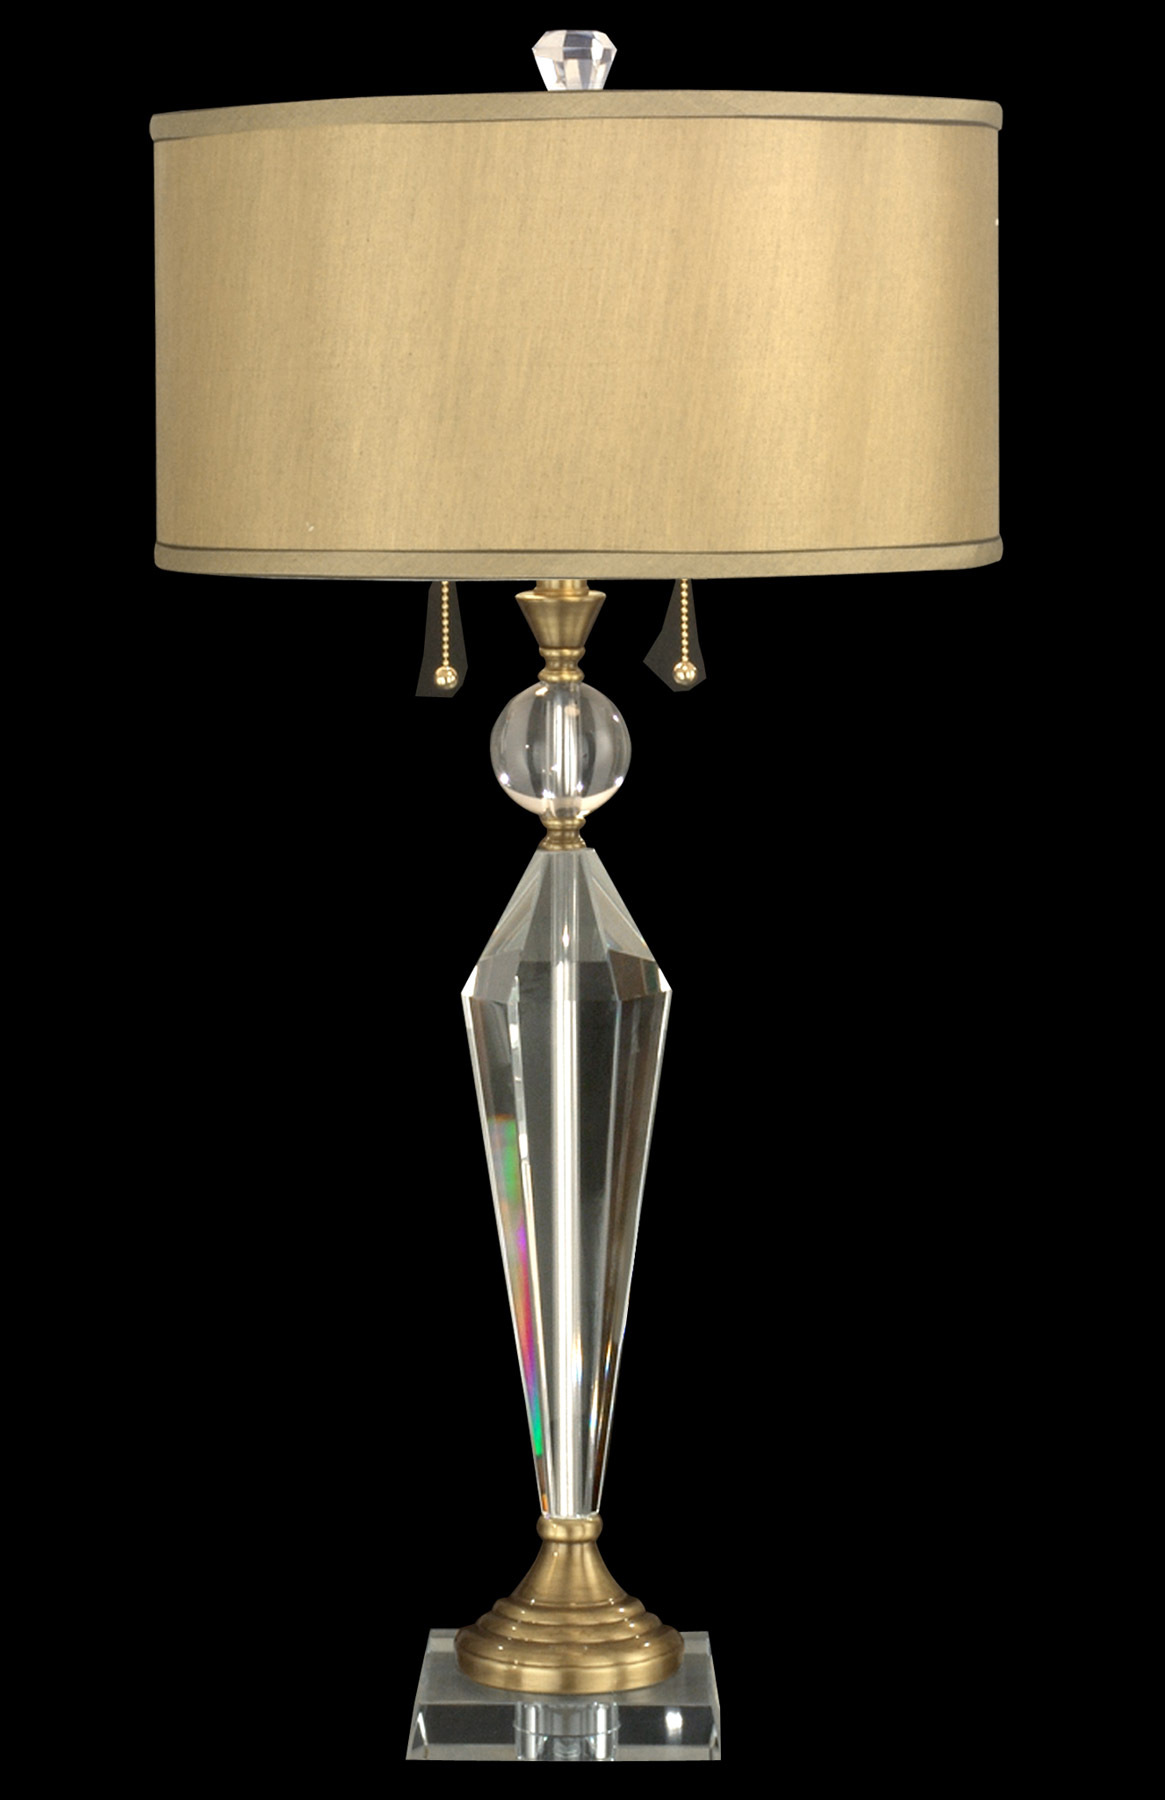 Dale Tiffany Gt701218 Crystal Strada Table Lamp